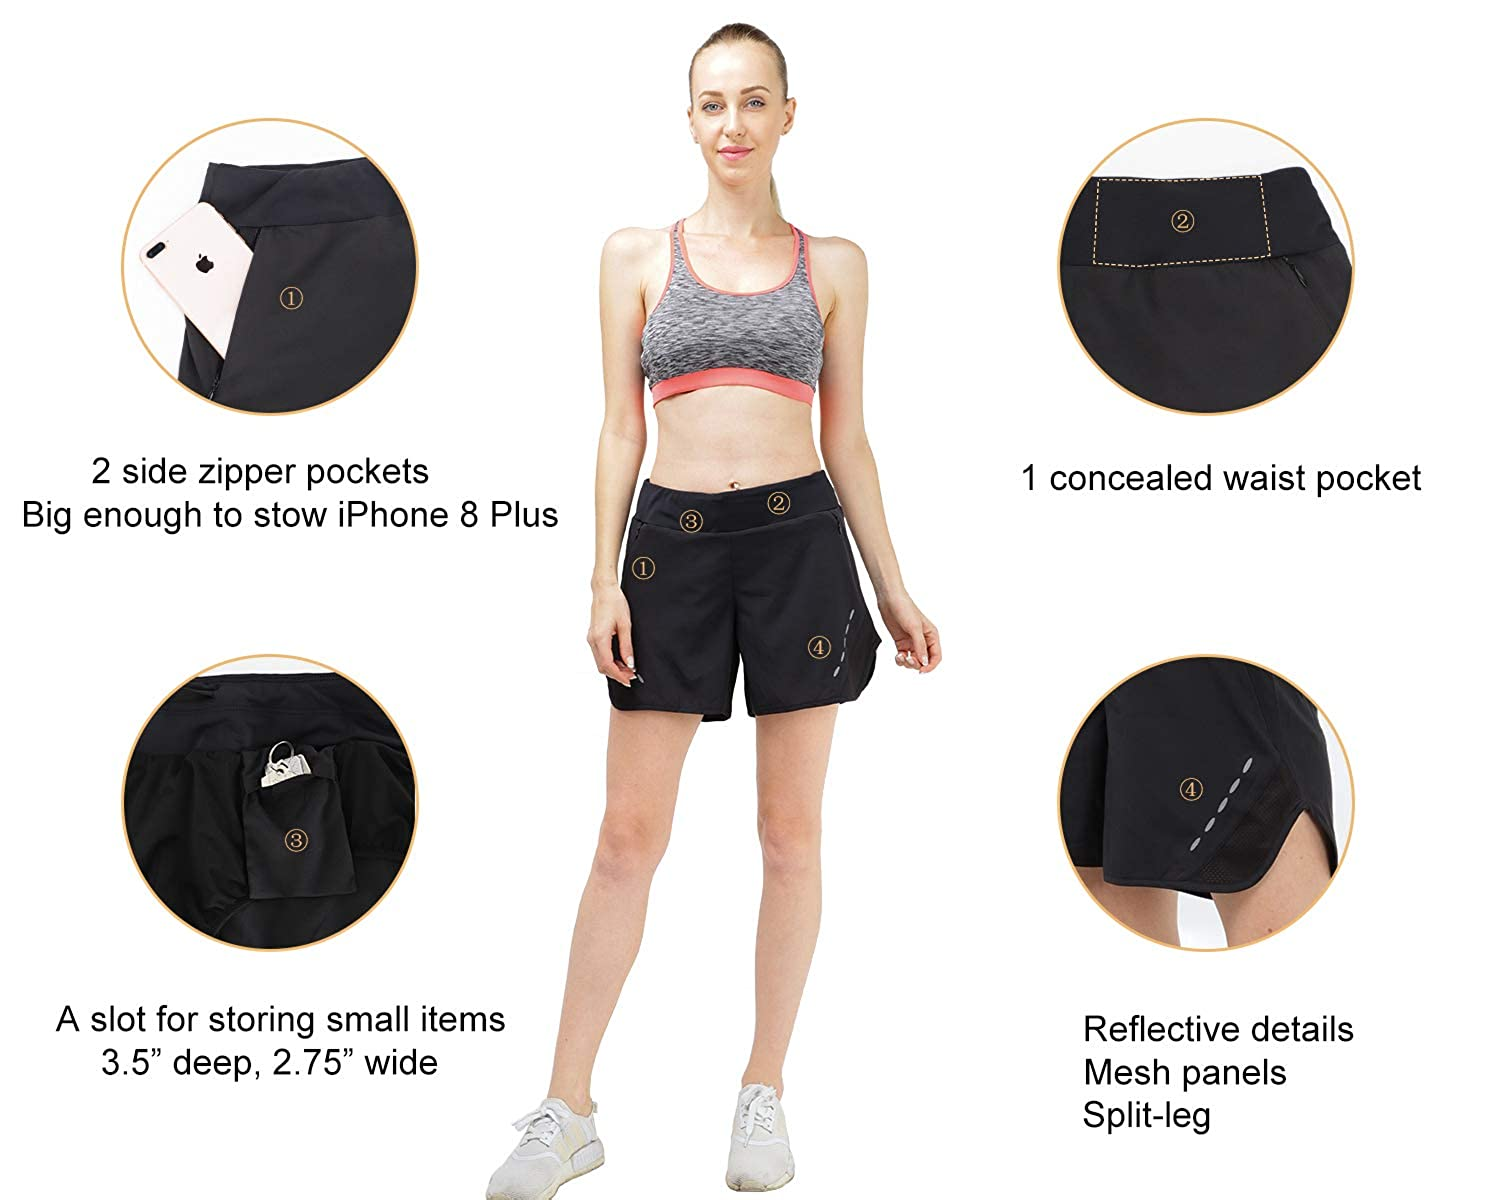 MIER Womens 5 Inches Running Shorts Quick Dry Workout Shorts with Liner Black Lightweight 4 Pockets Water Resistant